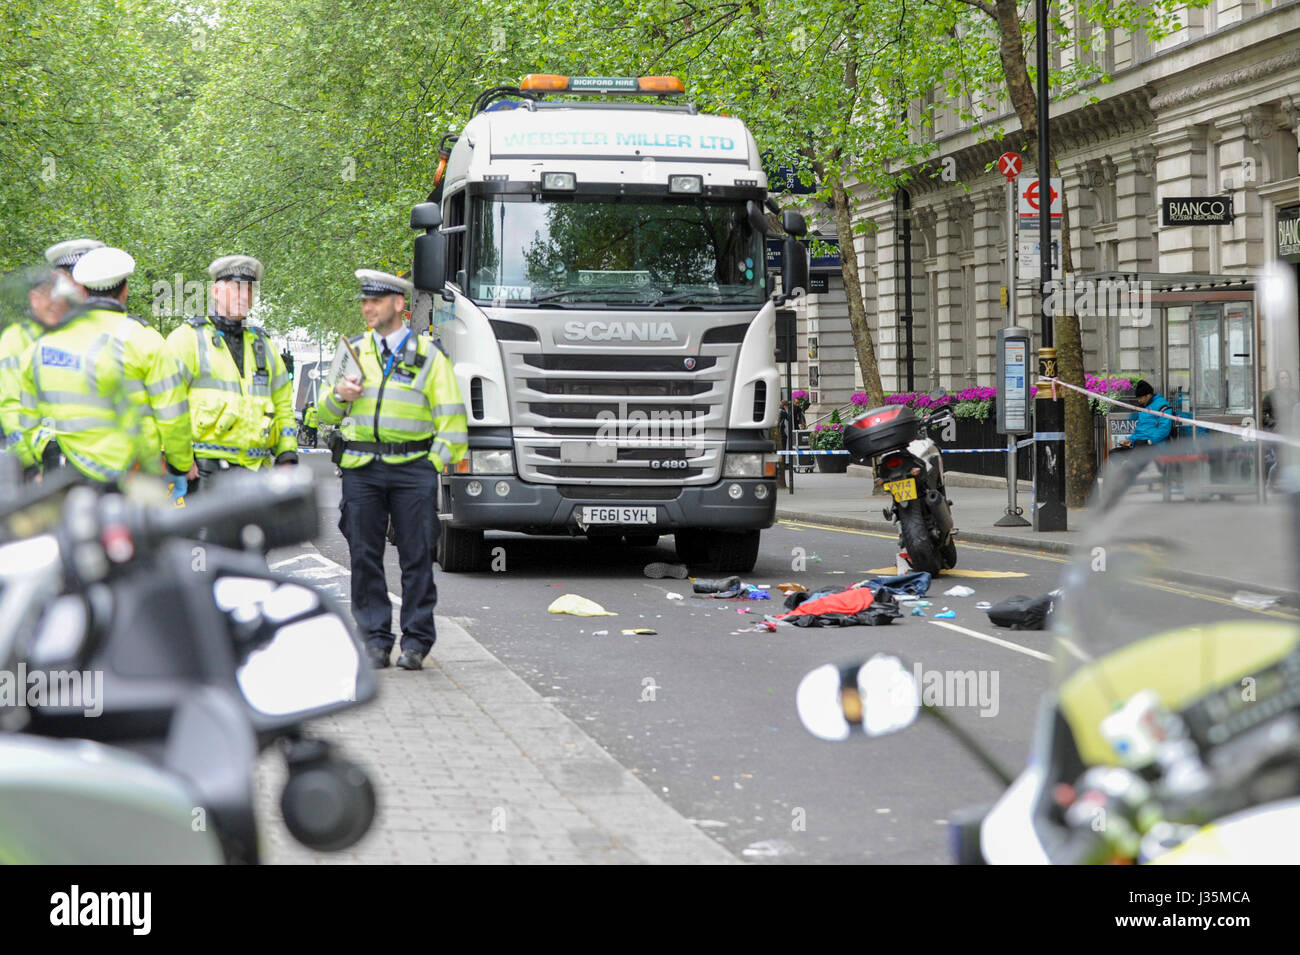 Police and emergency services attend the scene of a reported traffic accident between a lorry and a motorbike which has taken place in northumberland avenue